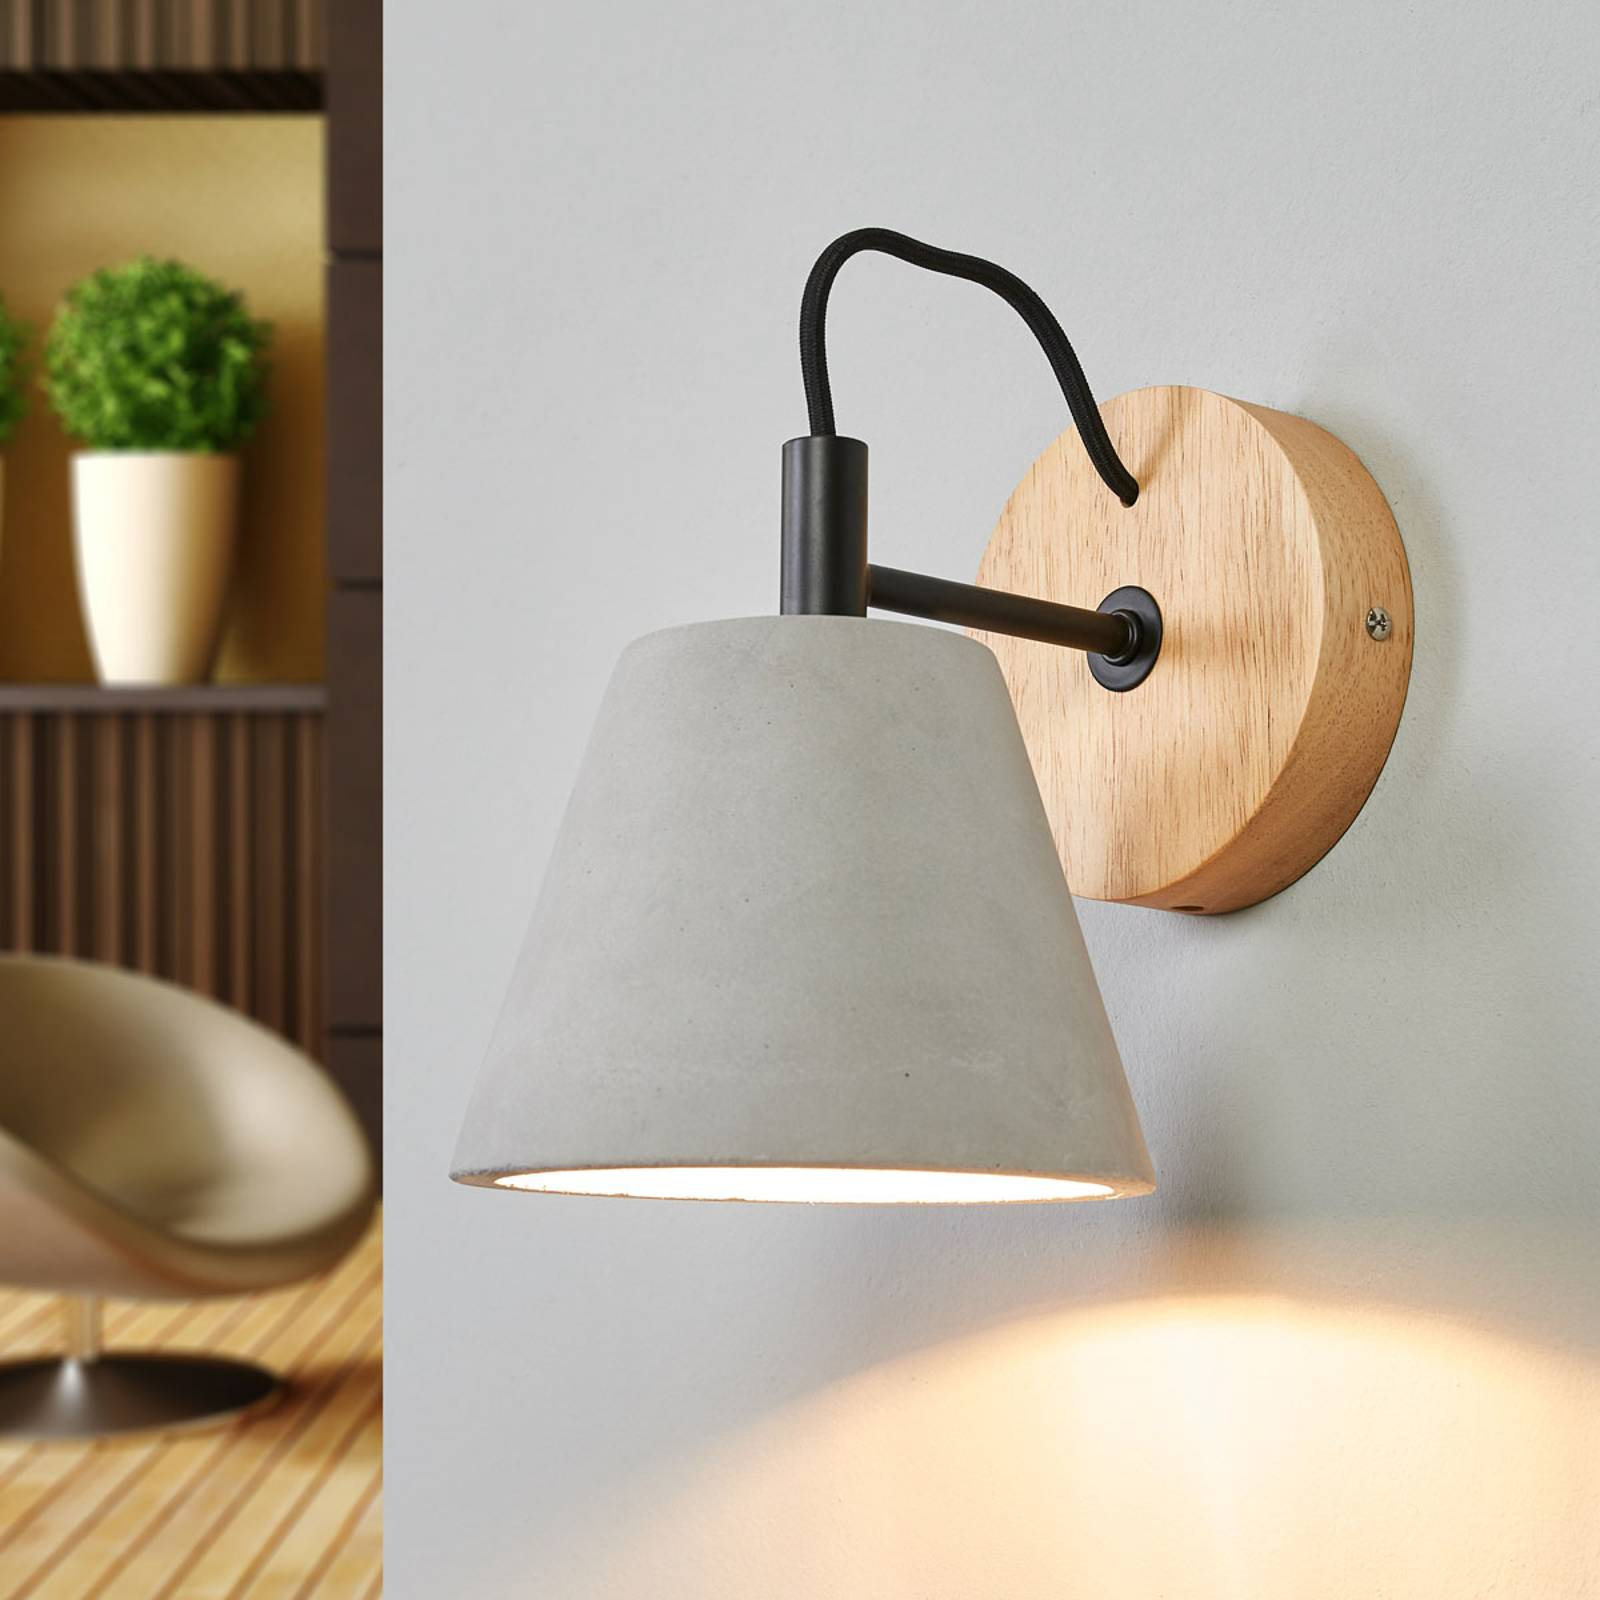 Possio - wall light w. concrete lampshade and wood from Lucide